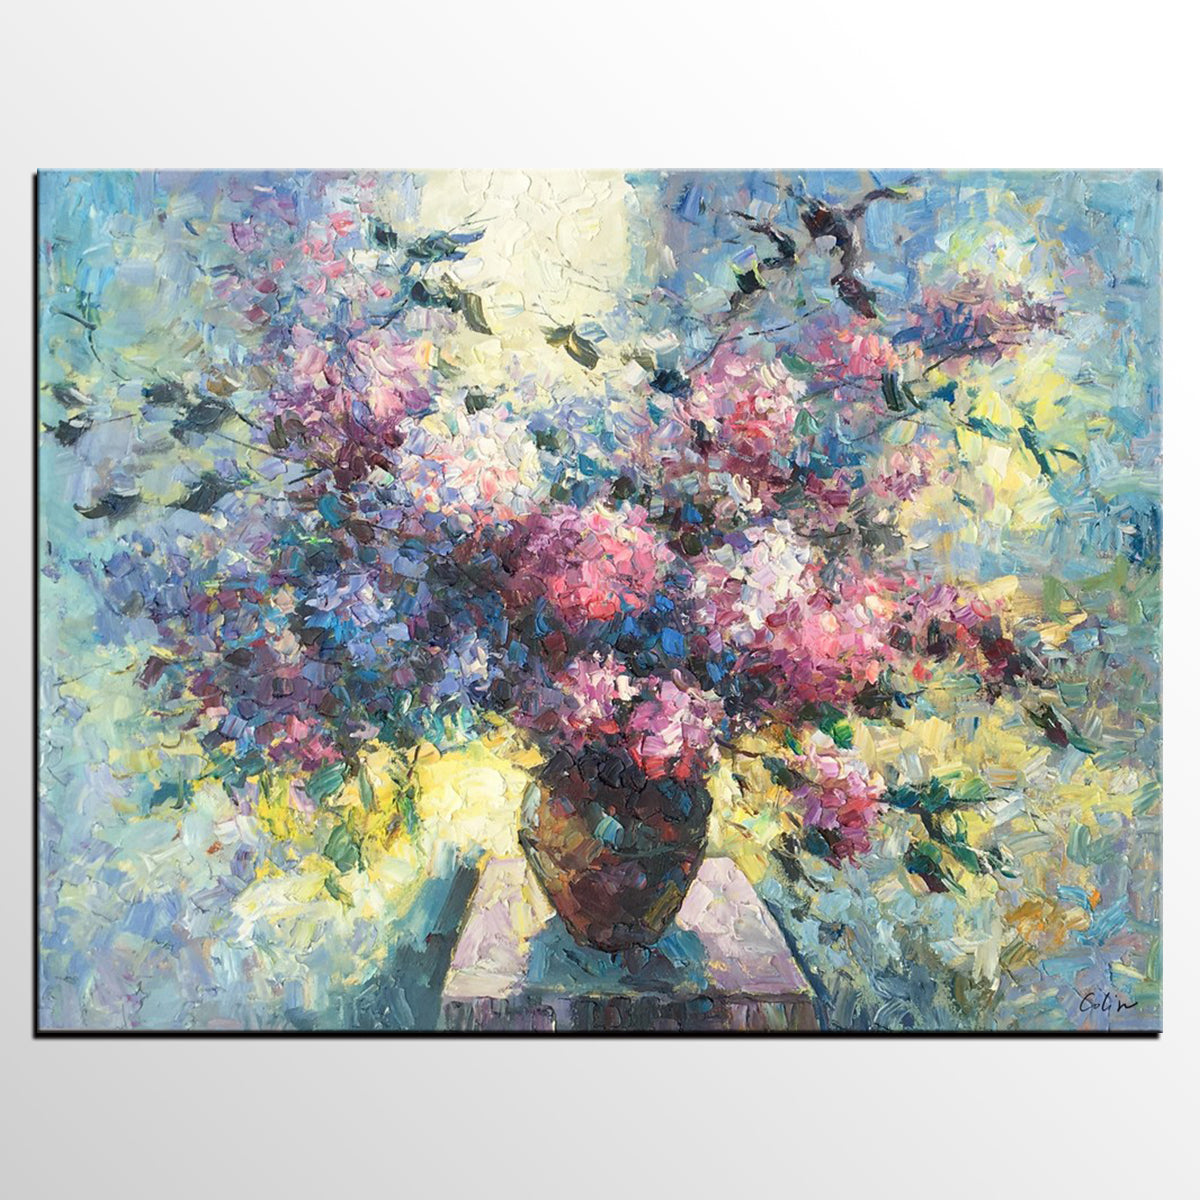 Canvas Wall Art, Flower Painting, Still Life Painting, Large Art, Canvas Art, Wall Art, Original Artwork, Canvas Painting, Oil Painting, 520-artworkcanvas